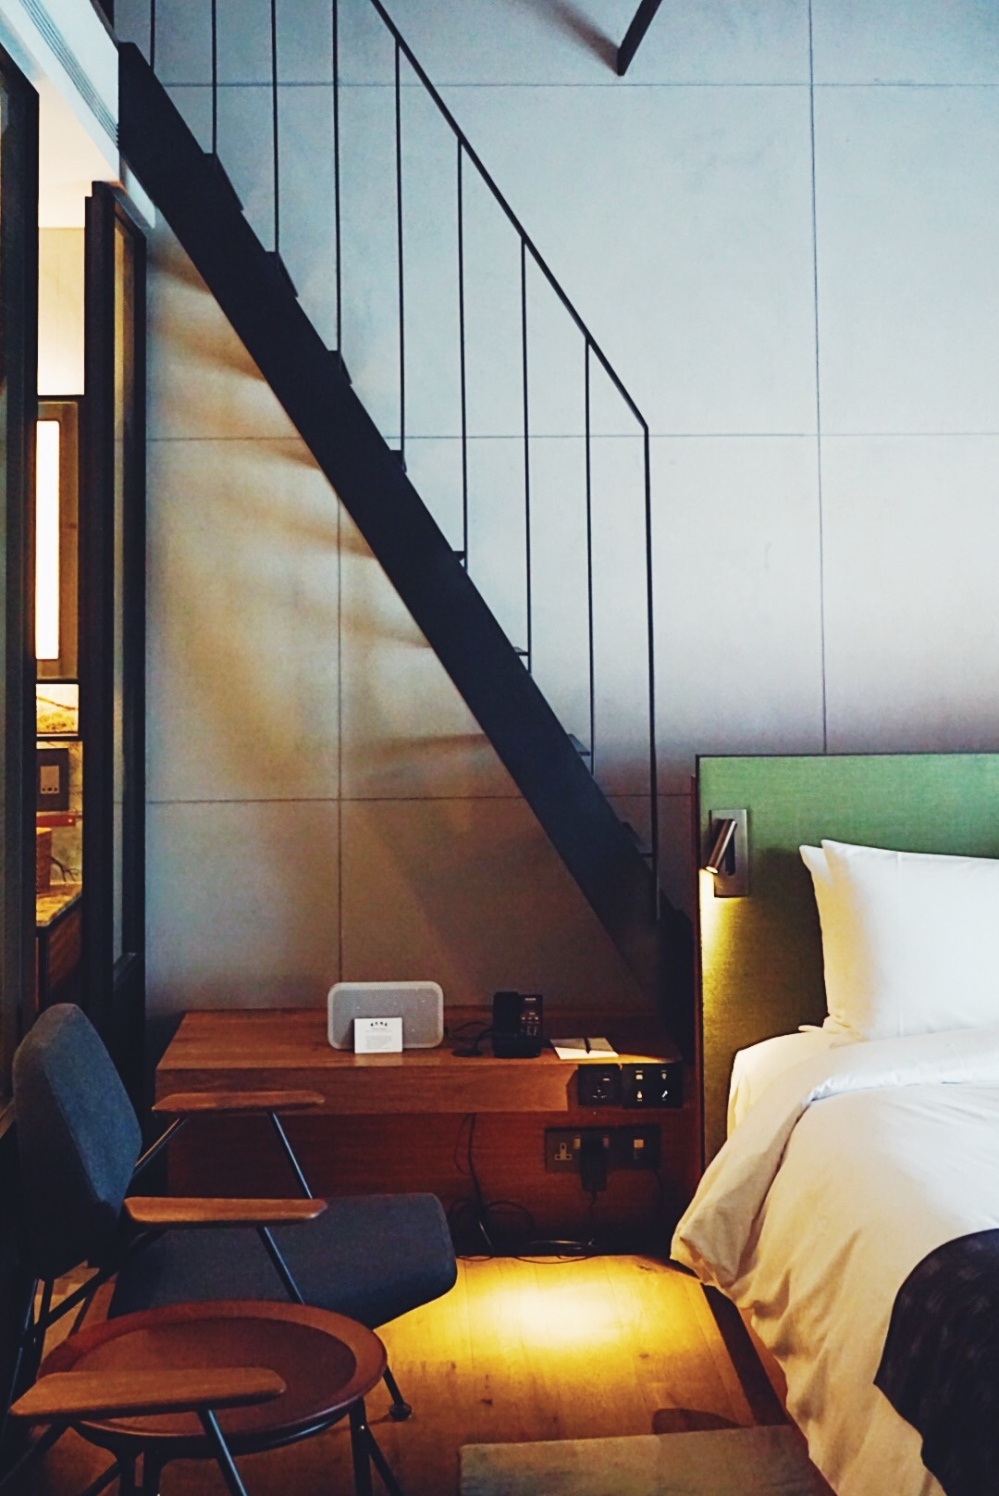 The Warehouse Hotel Singapore Rooms